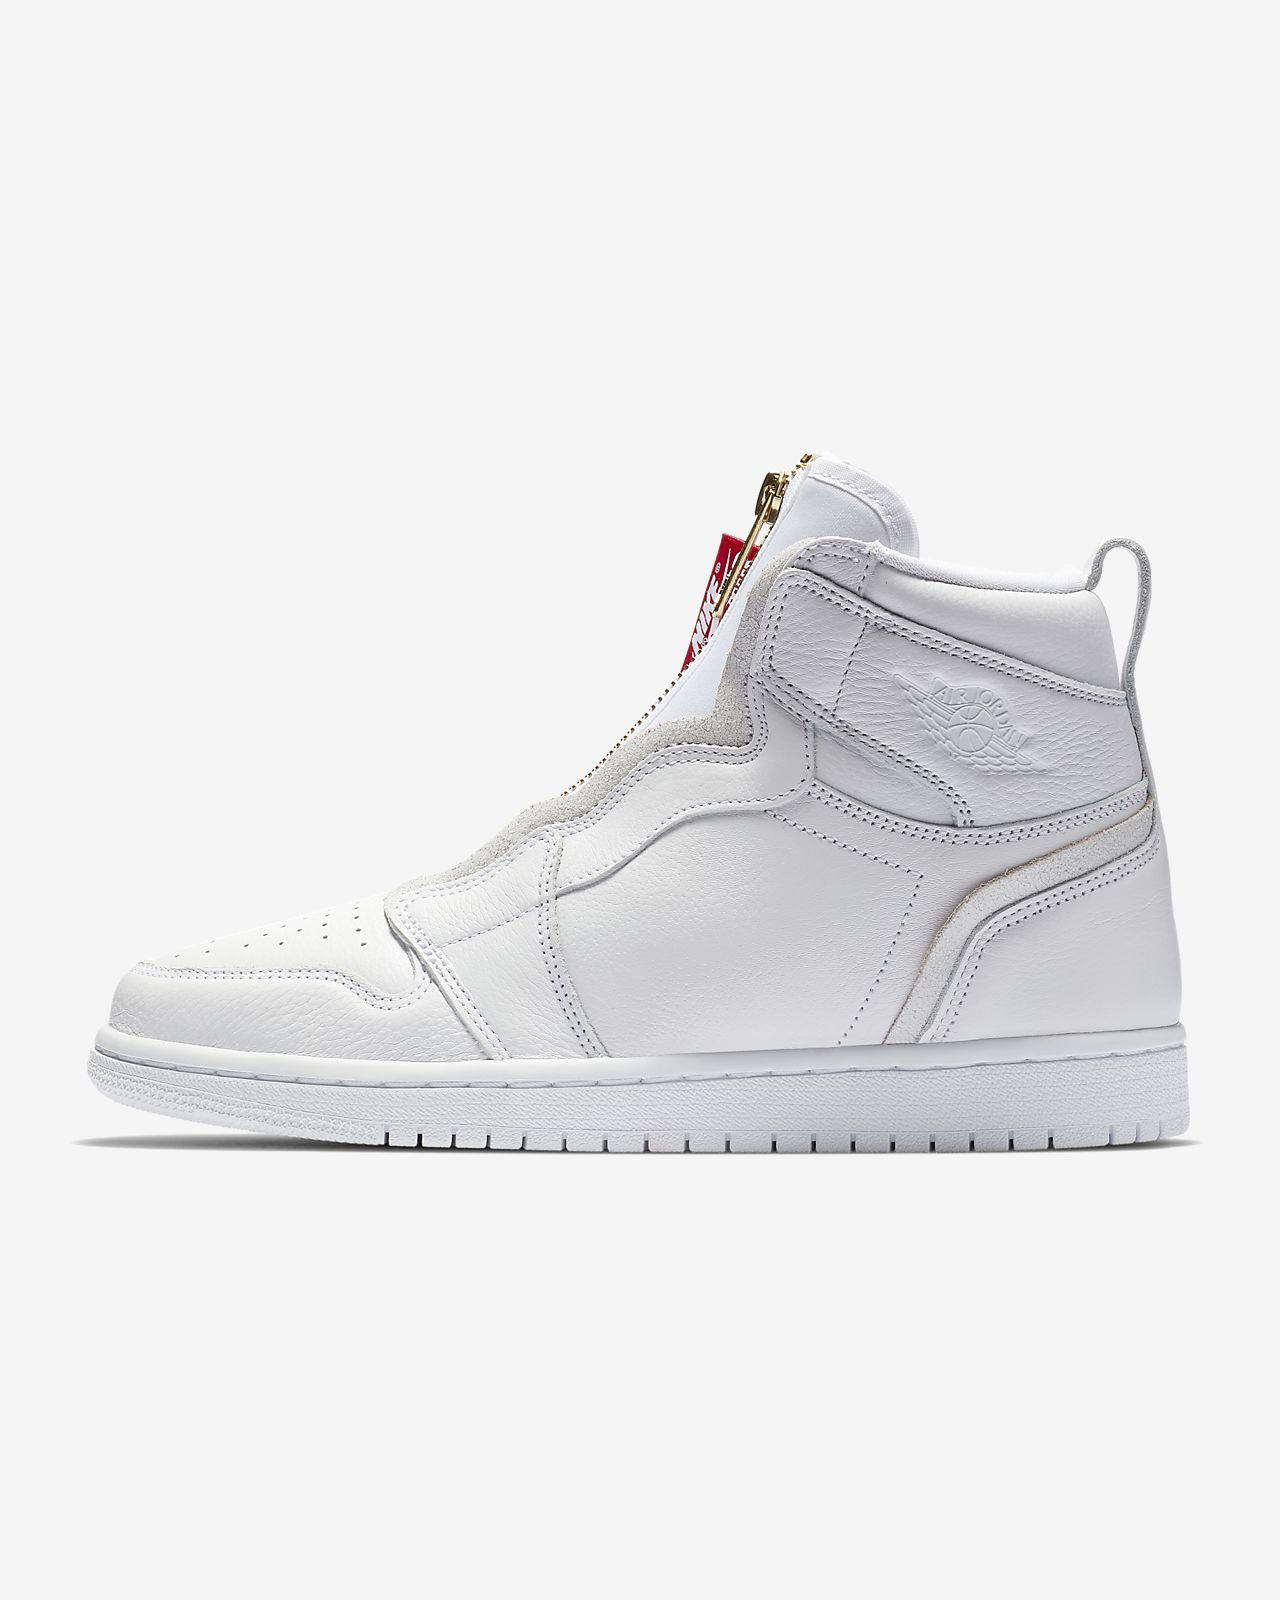 adf3a34eaa3f28 Air Jordan 1 High Zip Women s Shoe. Nike.com